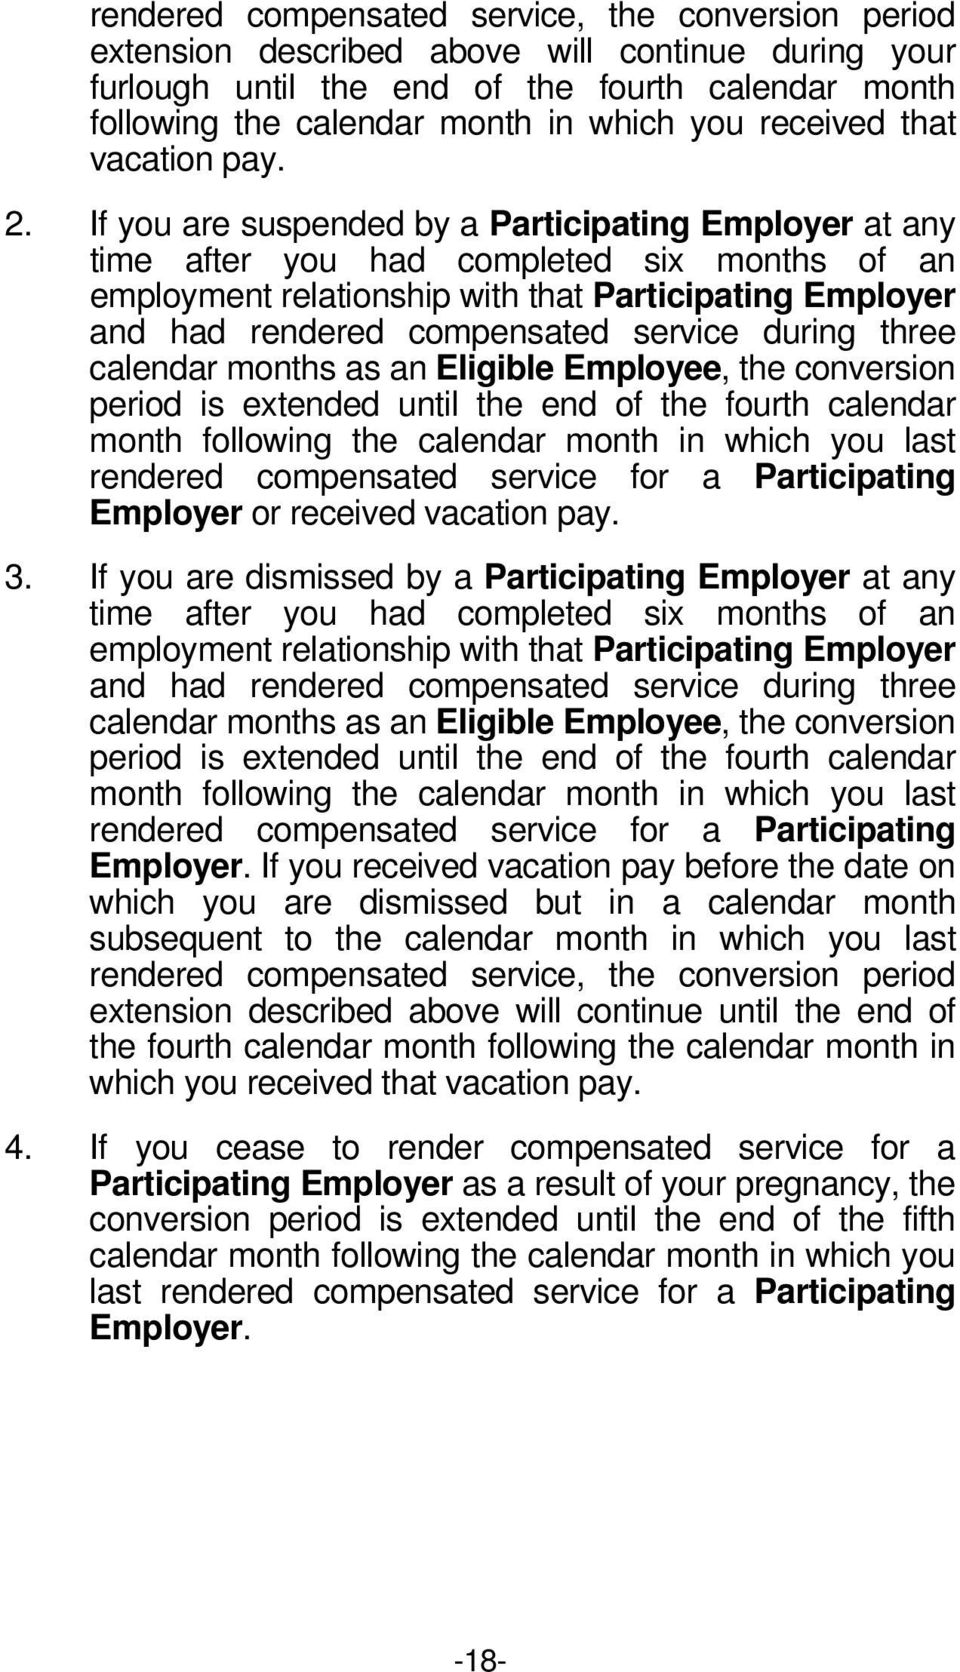 If you are suspended by a Participating Employer at any time after you had completed six months of an employment relationship with that Participating Employer and had rendered compensated service